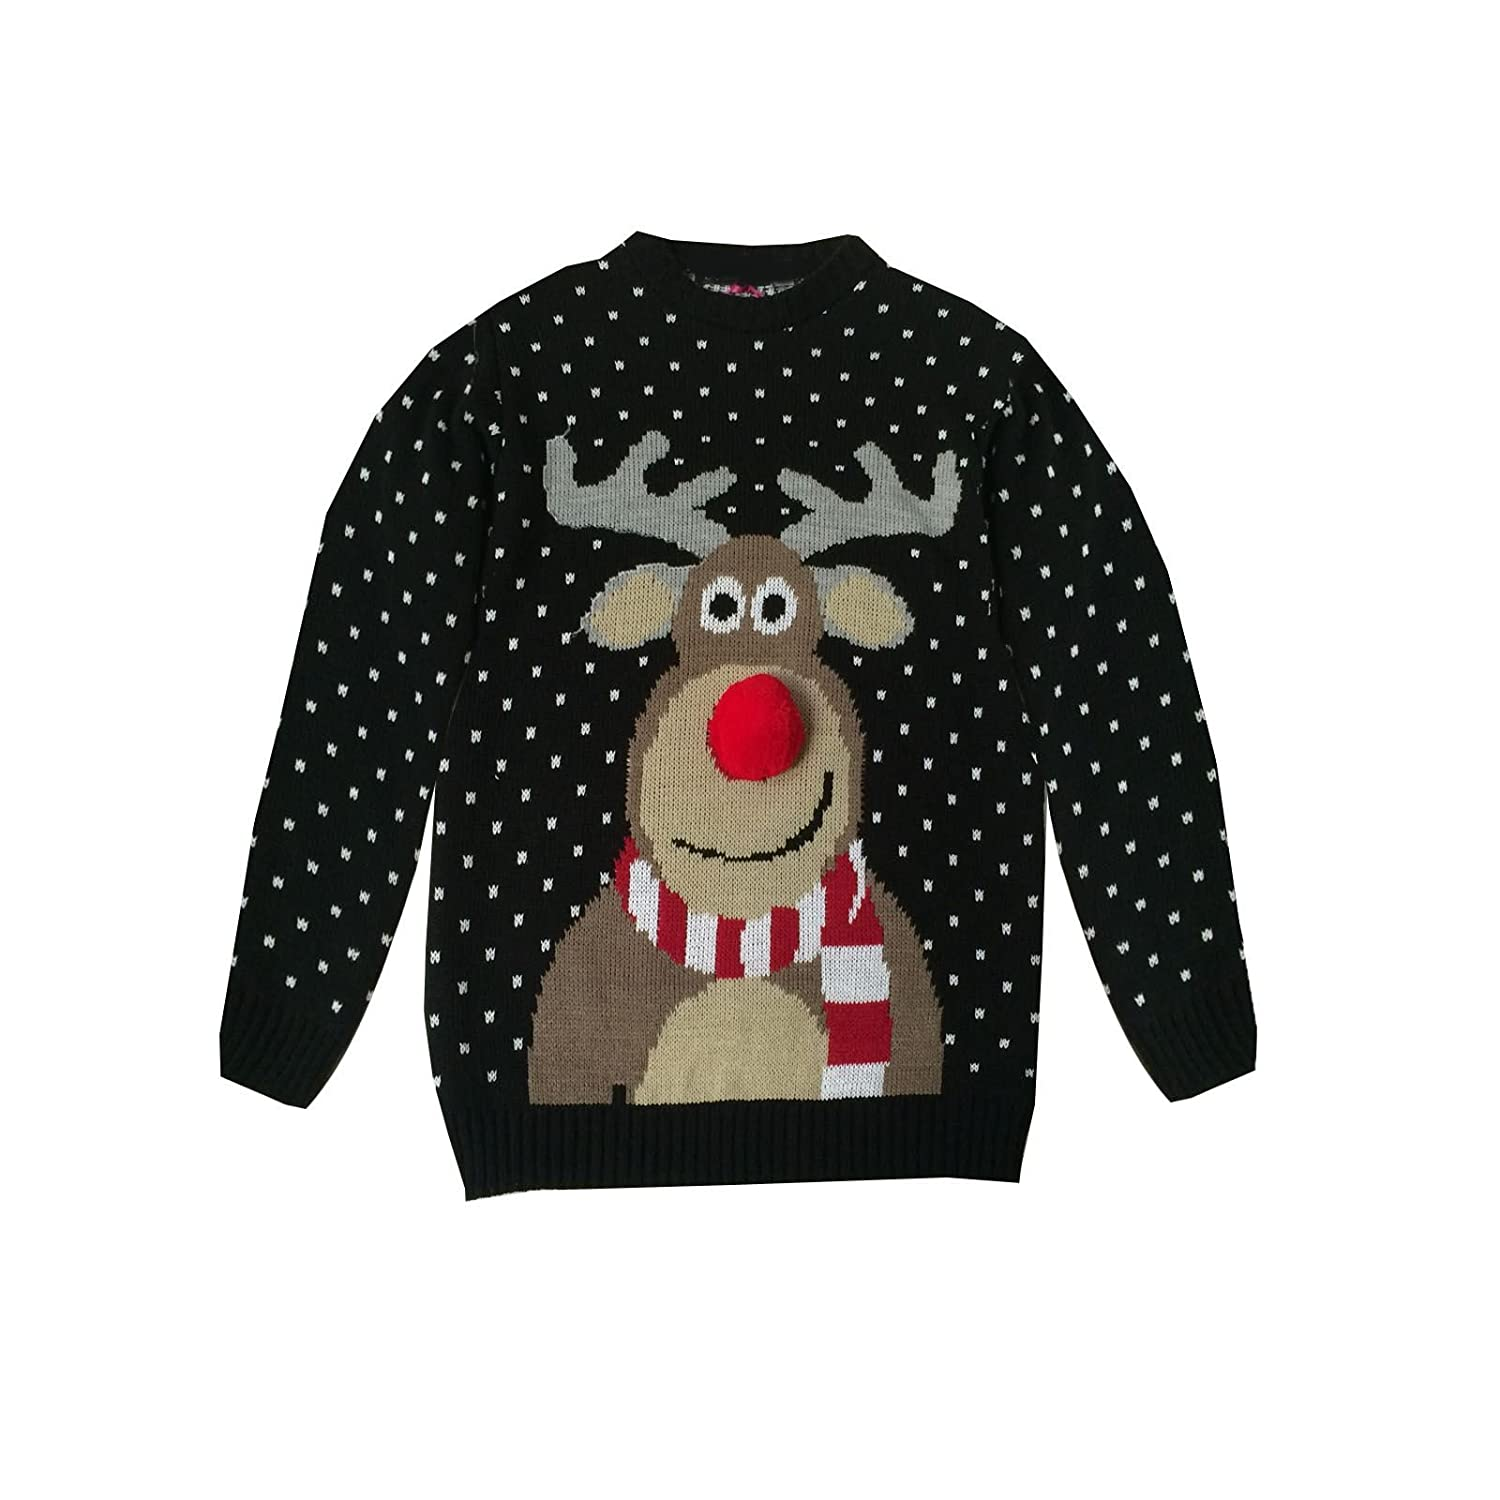 CHILDRENS KIDS BOYS GIRLS KNITTED RETRO NOVELTY CHRISTMAS XMAS JUMPER 3-12 YEARS